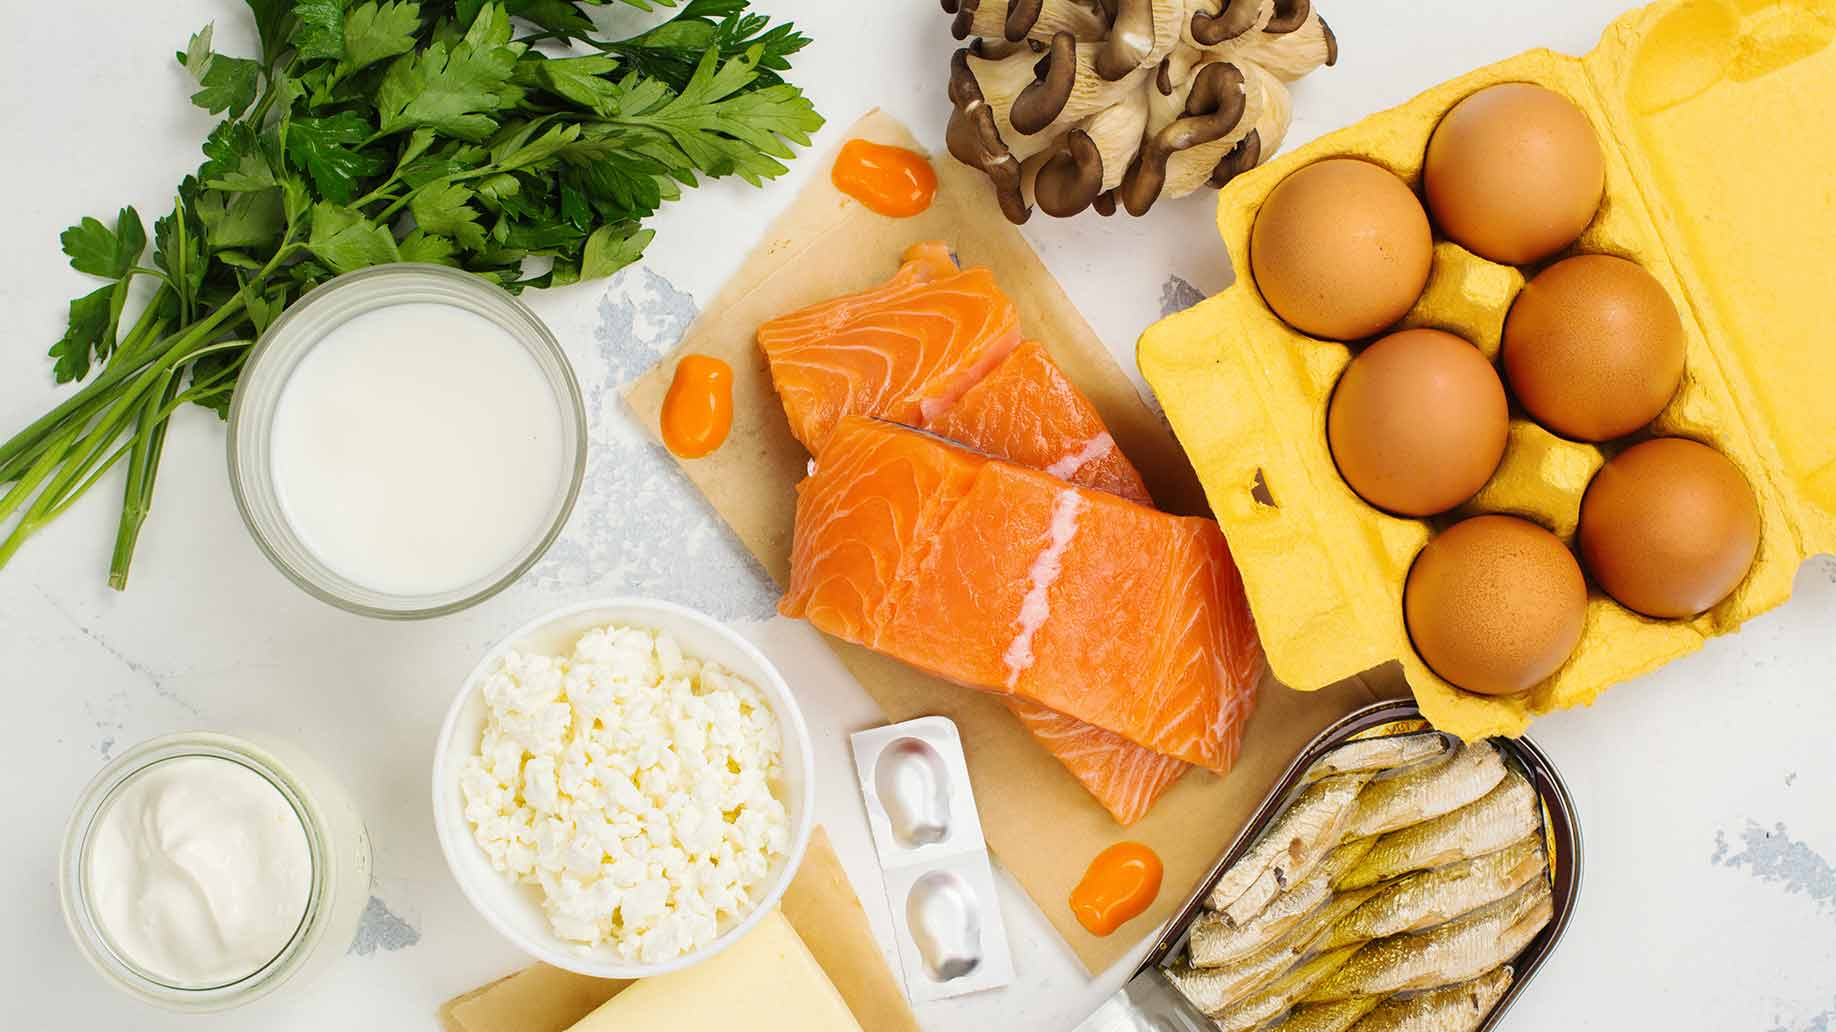 vitamin d food sources salmon mushrooms sardines eggs cheese dairy peas fish natural sources